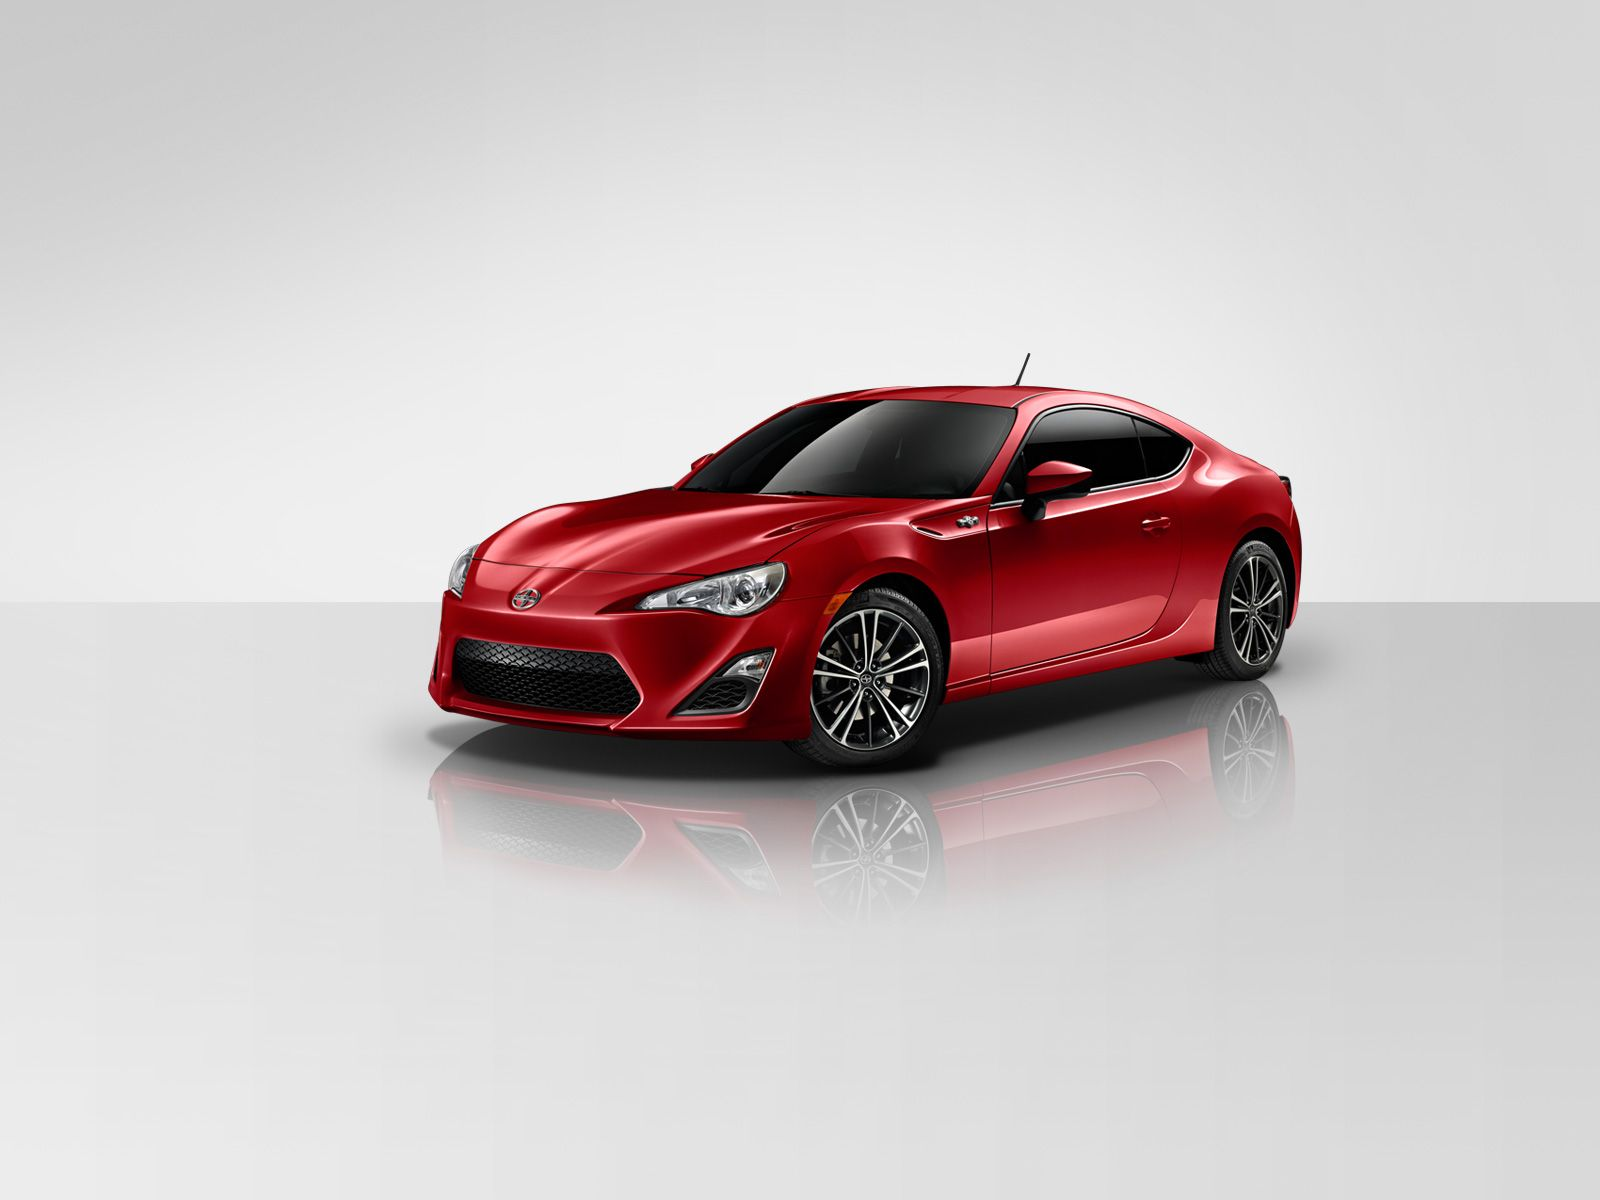 The Scion Fr S 86 Is The First Car From Toyota To Peak My Interest In A Long Time The Last Vehicles To Do So Were Fathers S 356 Speedster Toyota Supra Turbo